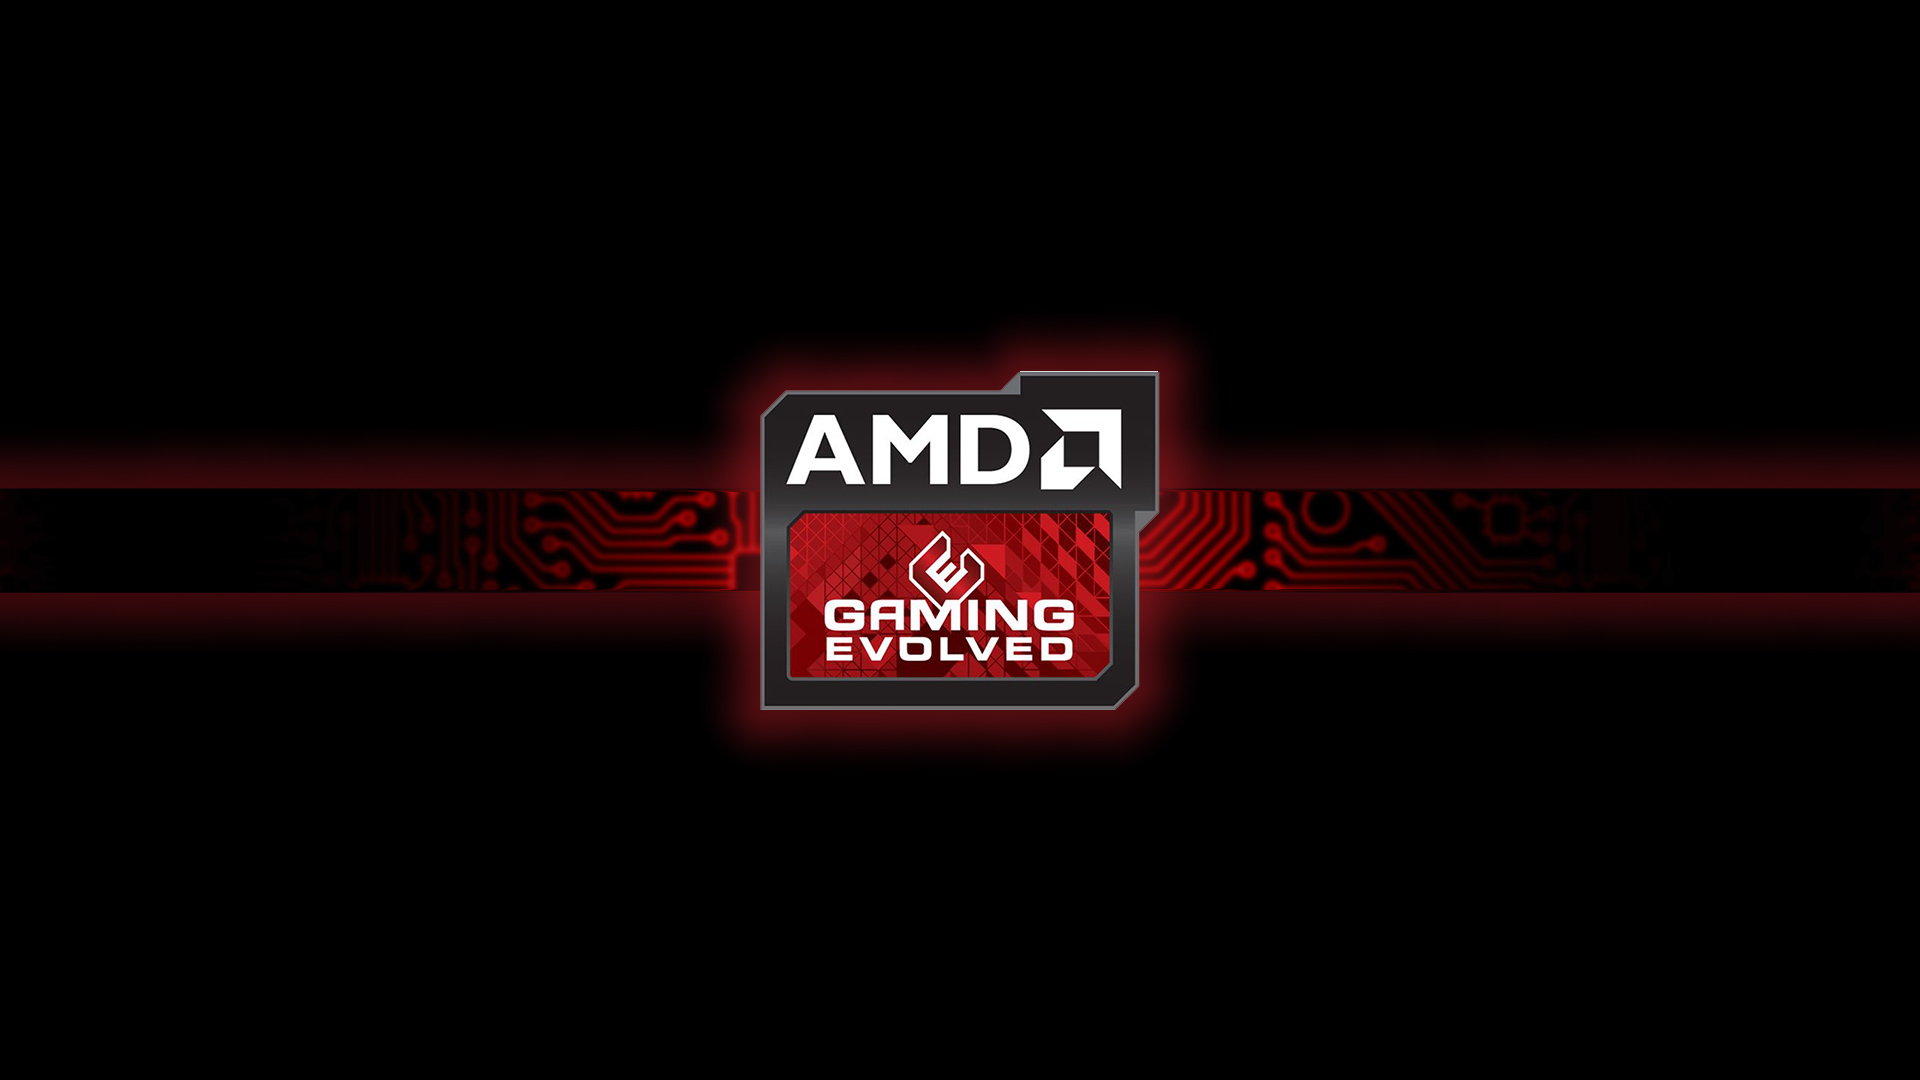 amd64 x2 wallpaper i - photo #34